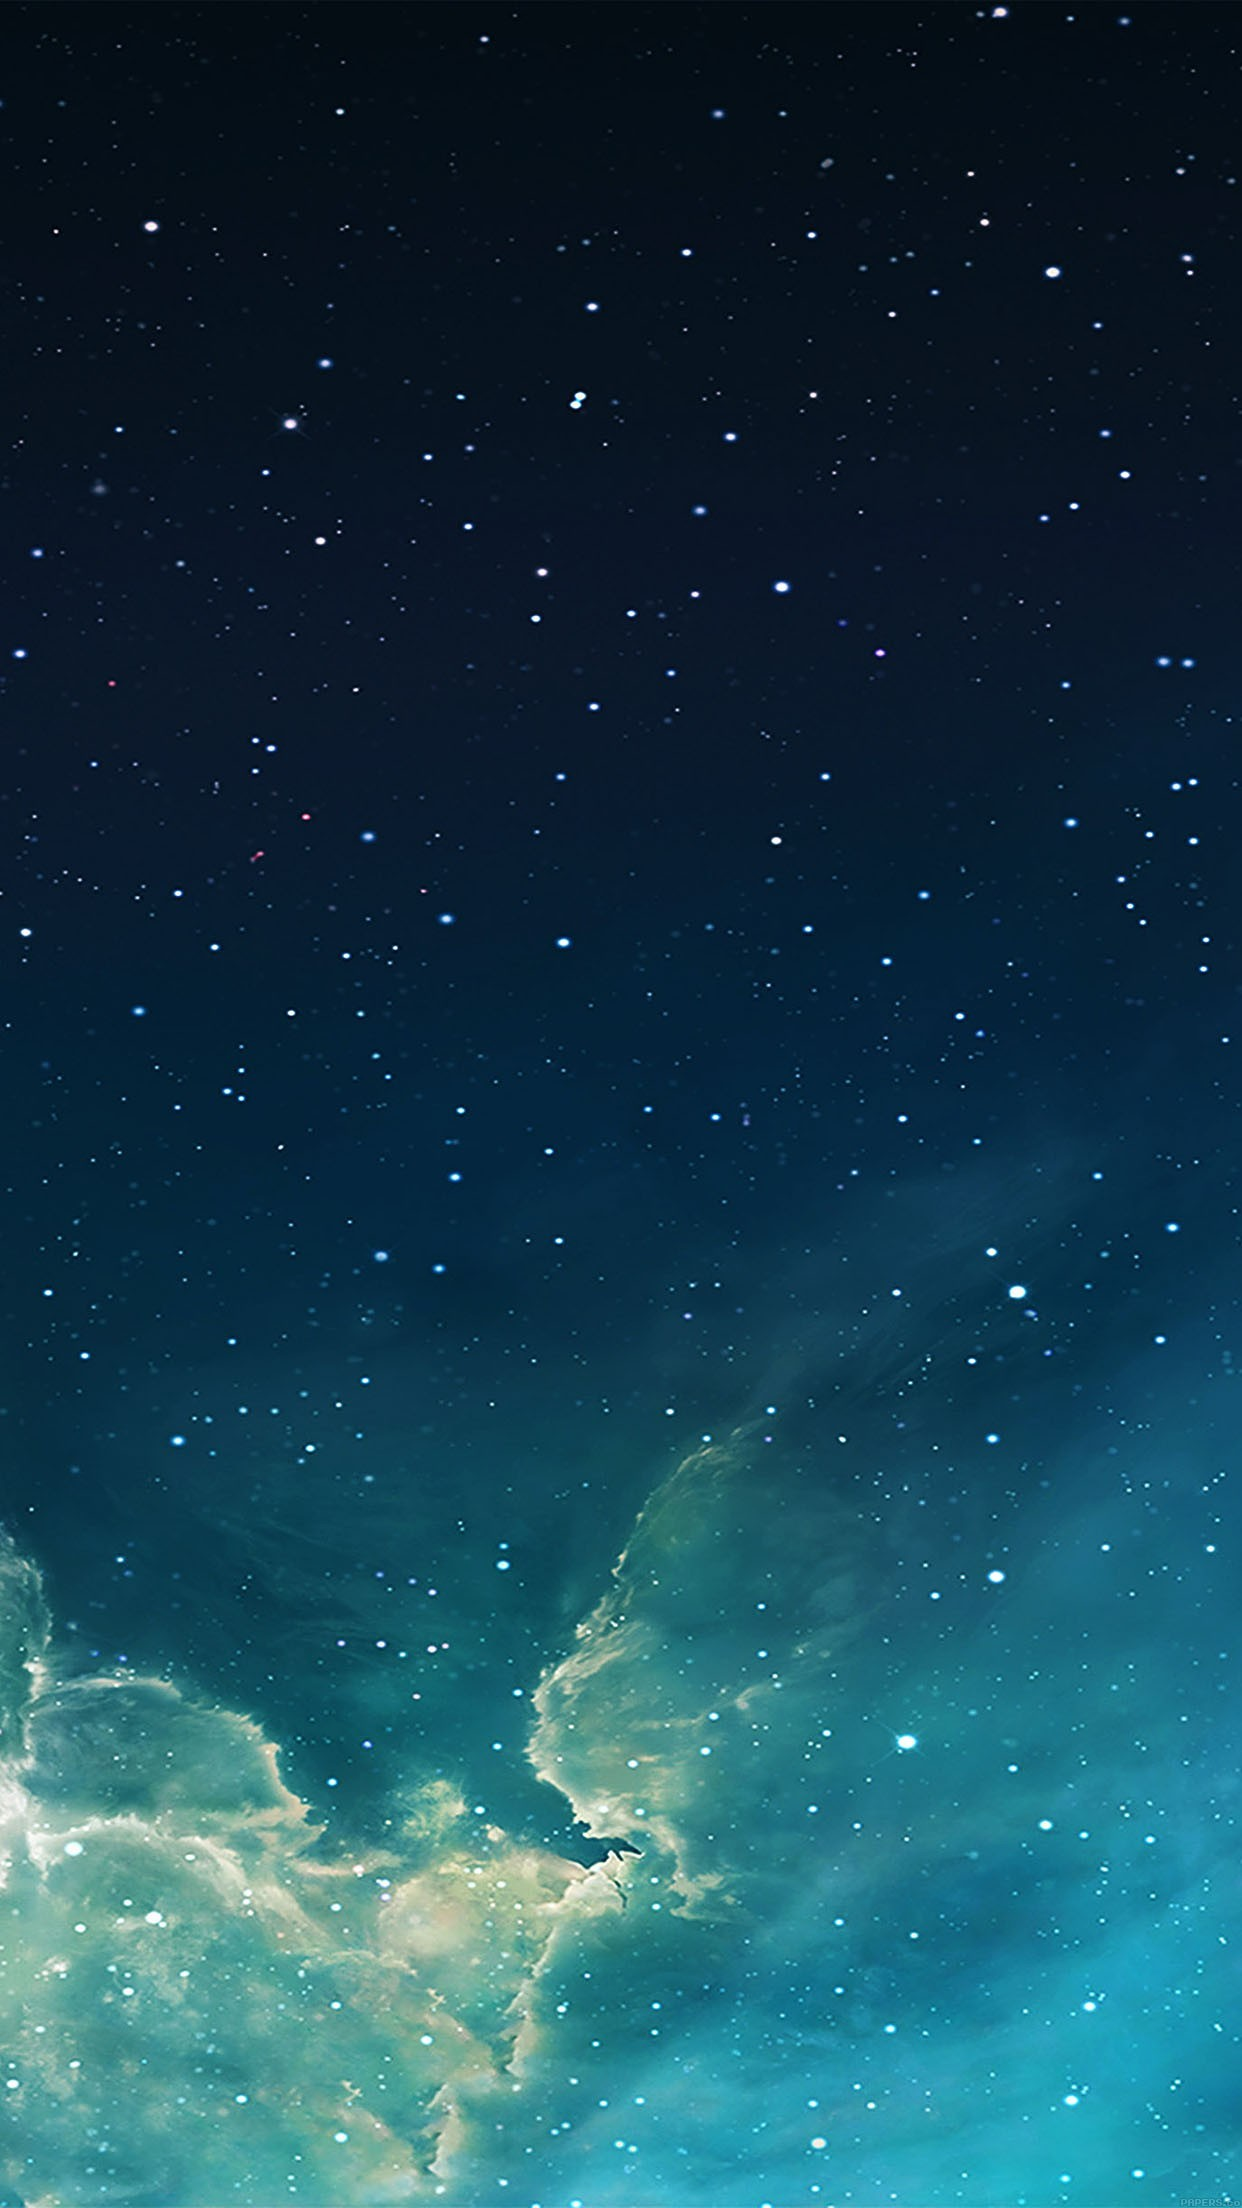 1242x2208 wallpaper galaxy blue 7 starry star sky iphone 6 plus wallpapers - daily  best…